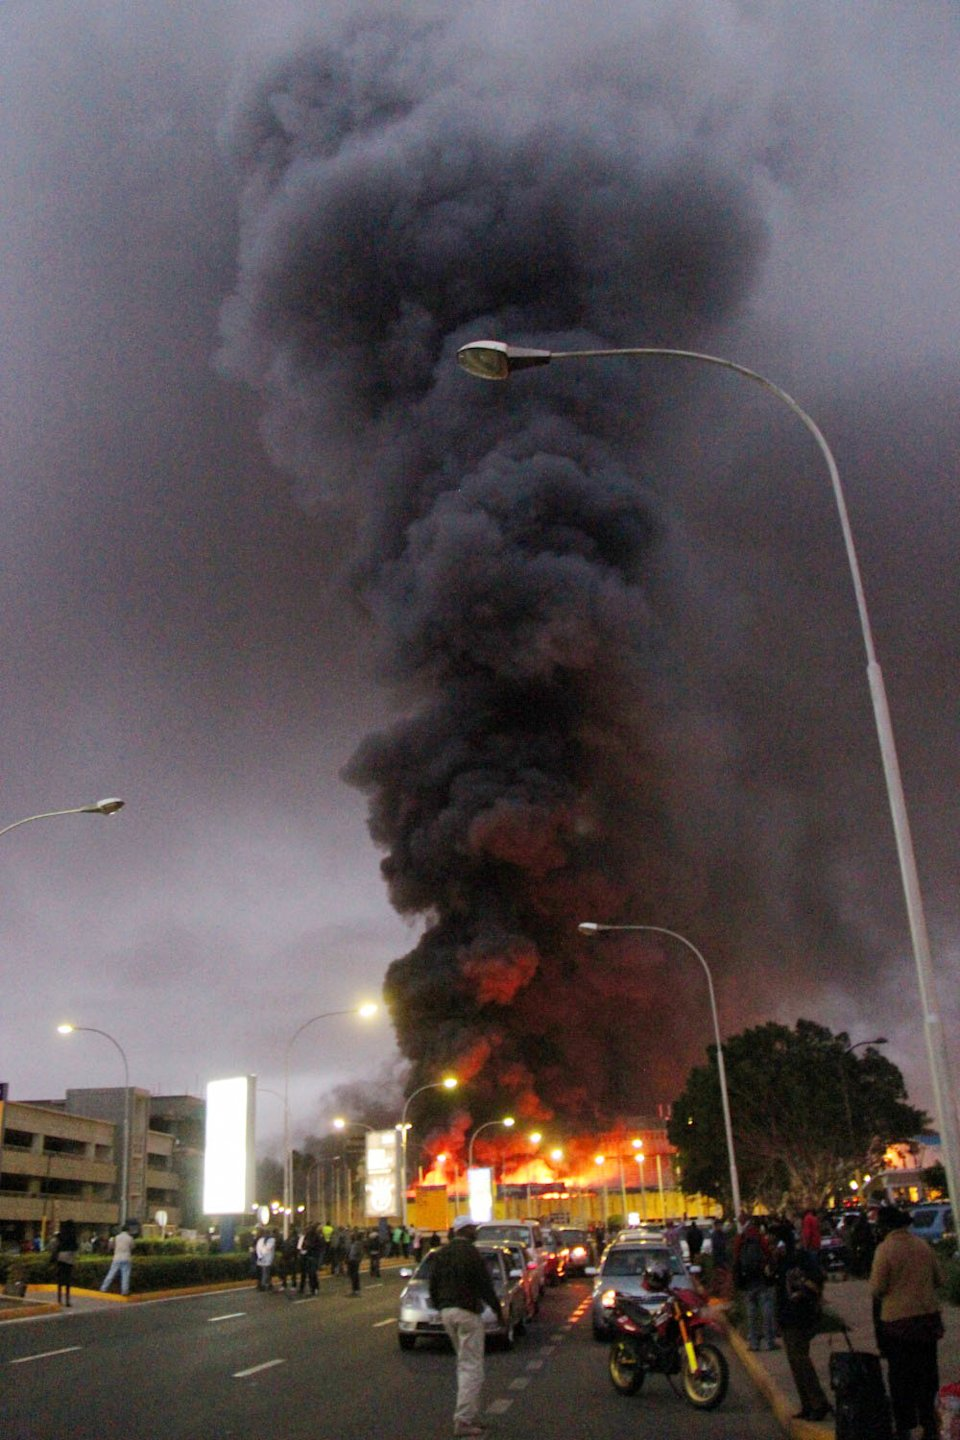 People watch dense black smoke billowing from the Jomo Kenyatta International Airport in Nairobi, Kenya, early Wednesday, Aug. 7, 2013. Firefighters are battling a large blaze raging at Kenya's main international airport. The Kenya Airports Authority said Wednesday that the airport has been closed until further notice so that emergency teams can battle the fire. (AP Photo/Kyodo News) JAPAN OUT, MANDATORY CREDIT